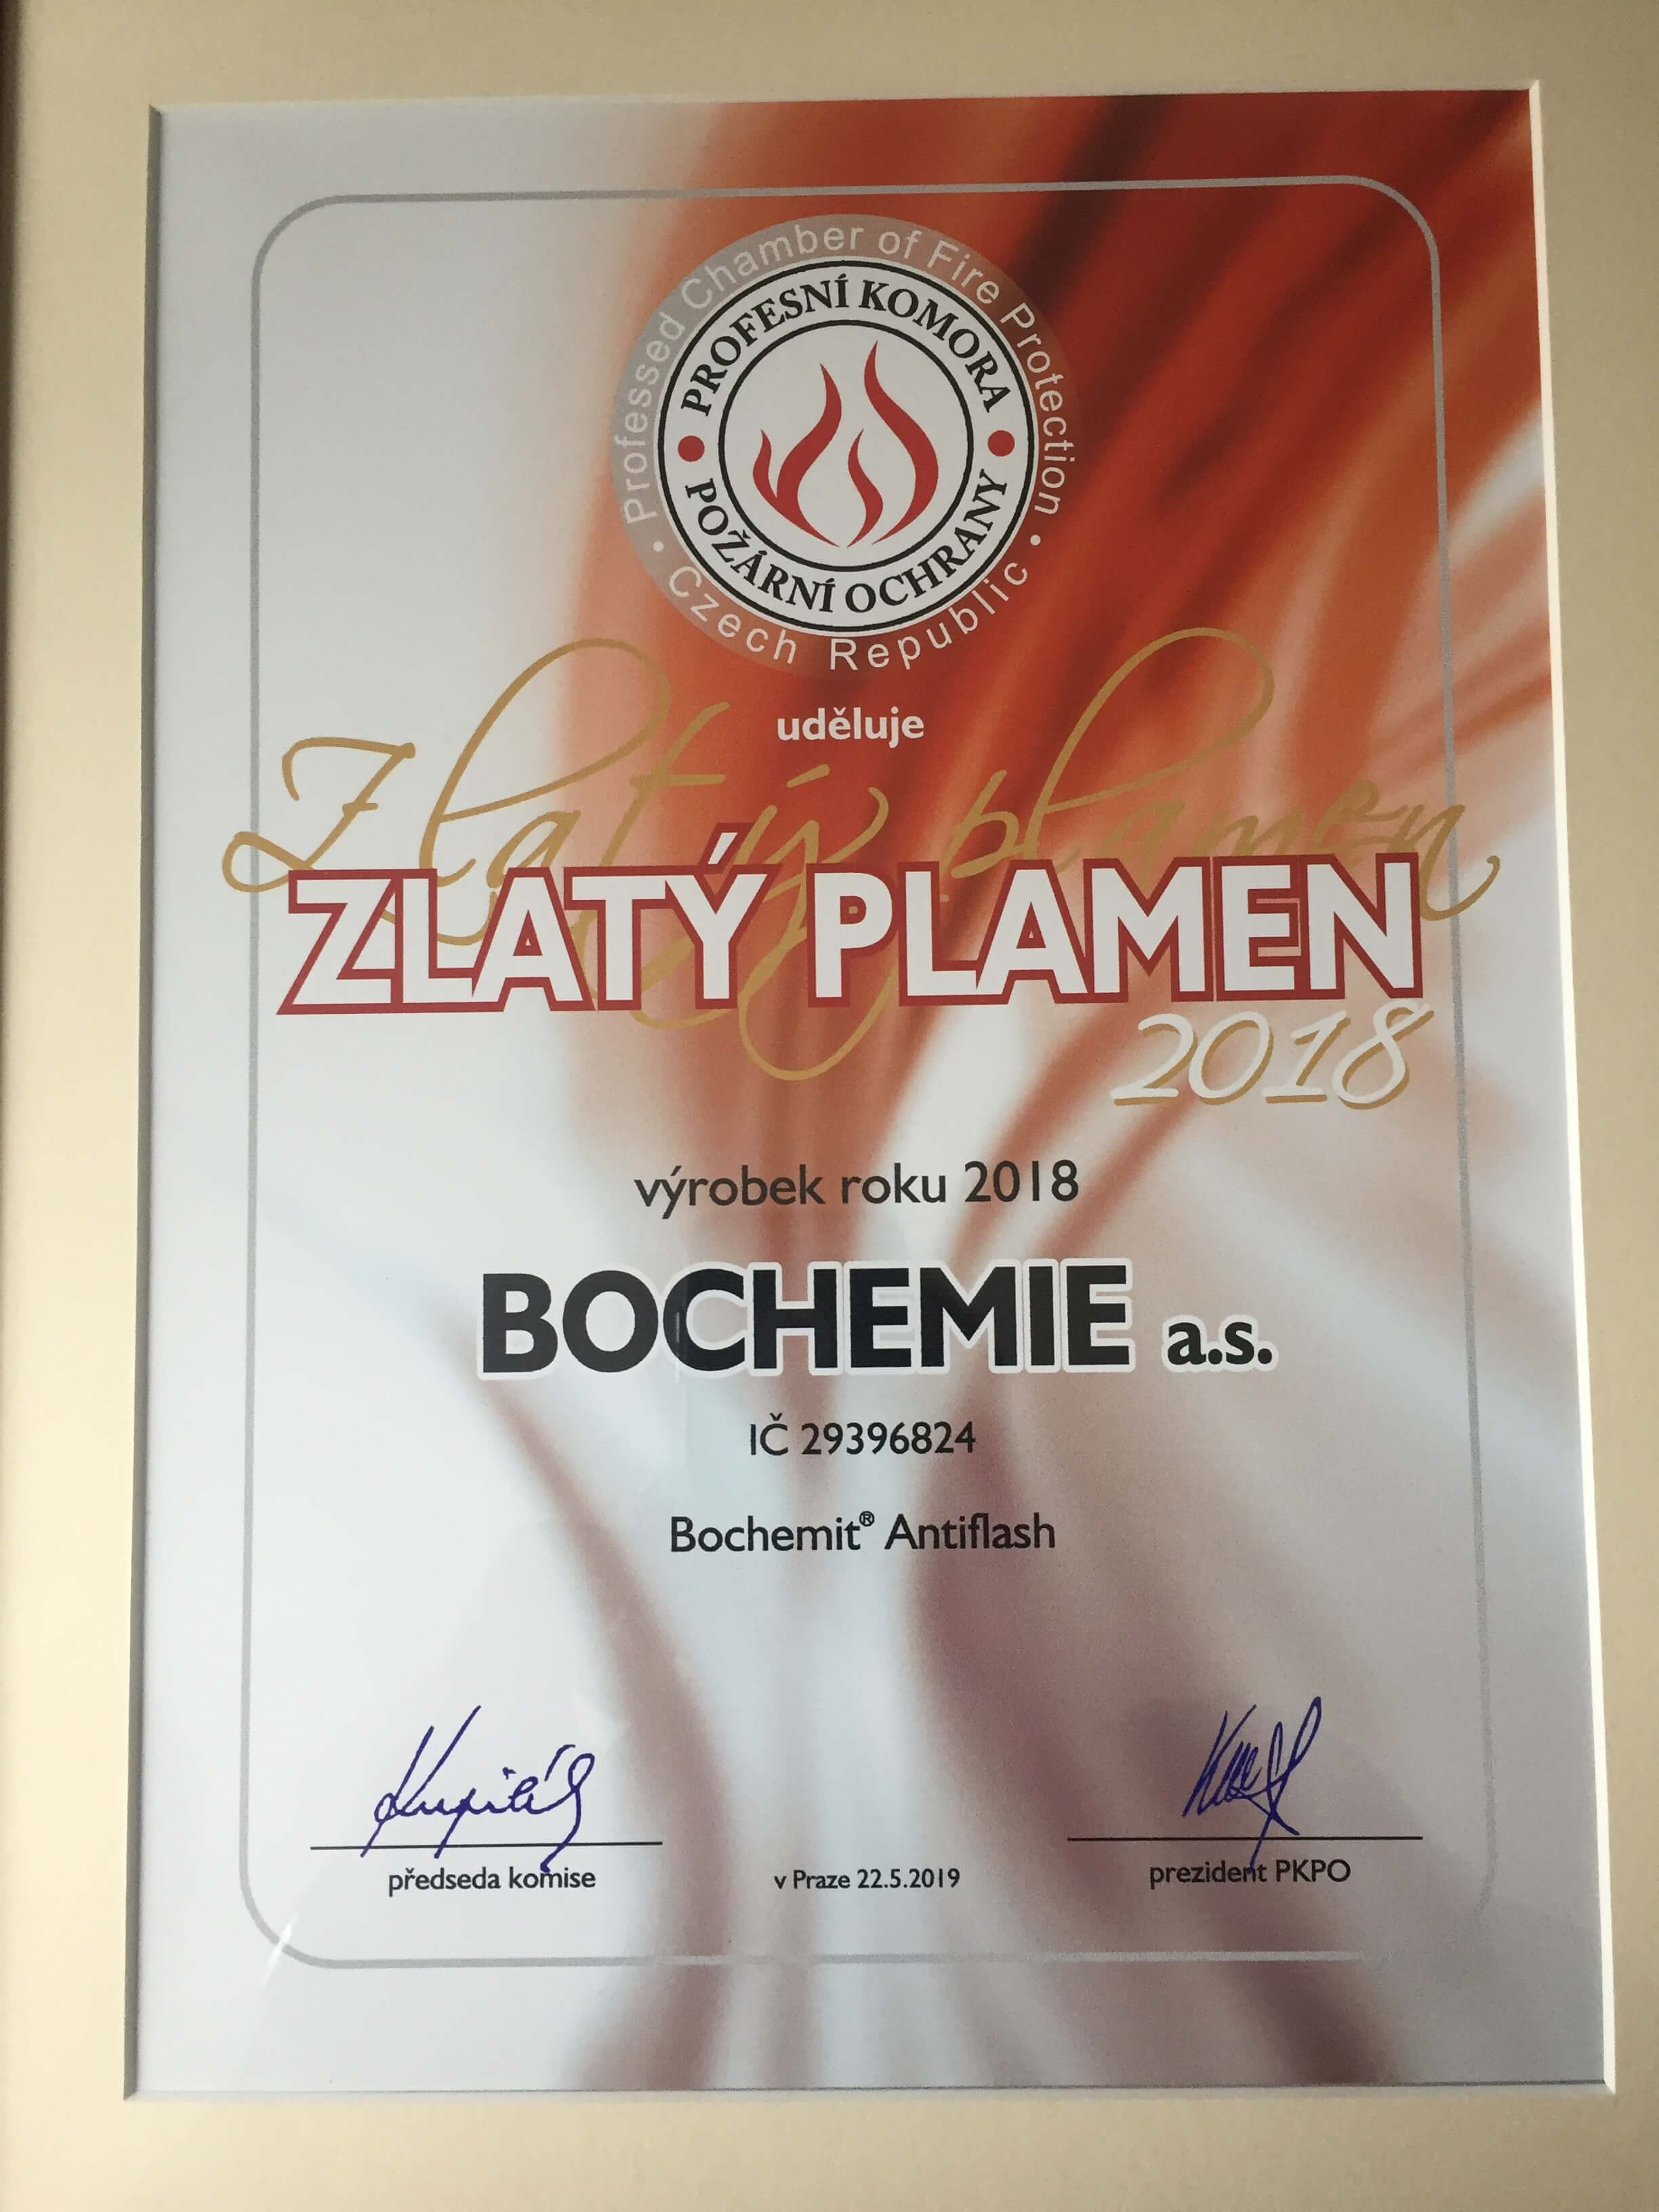 BOCHEMIT Antiflash picks up award from the Czech Professional Chamber of Fire Protection